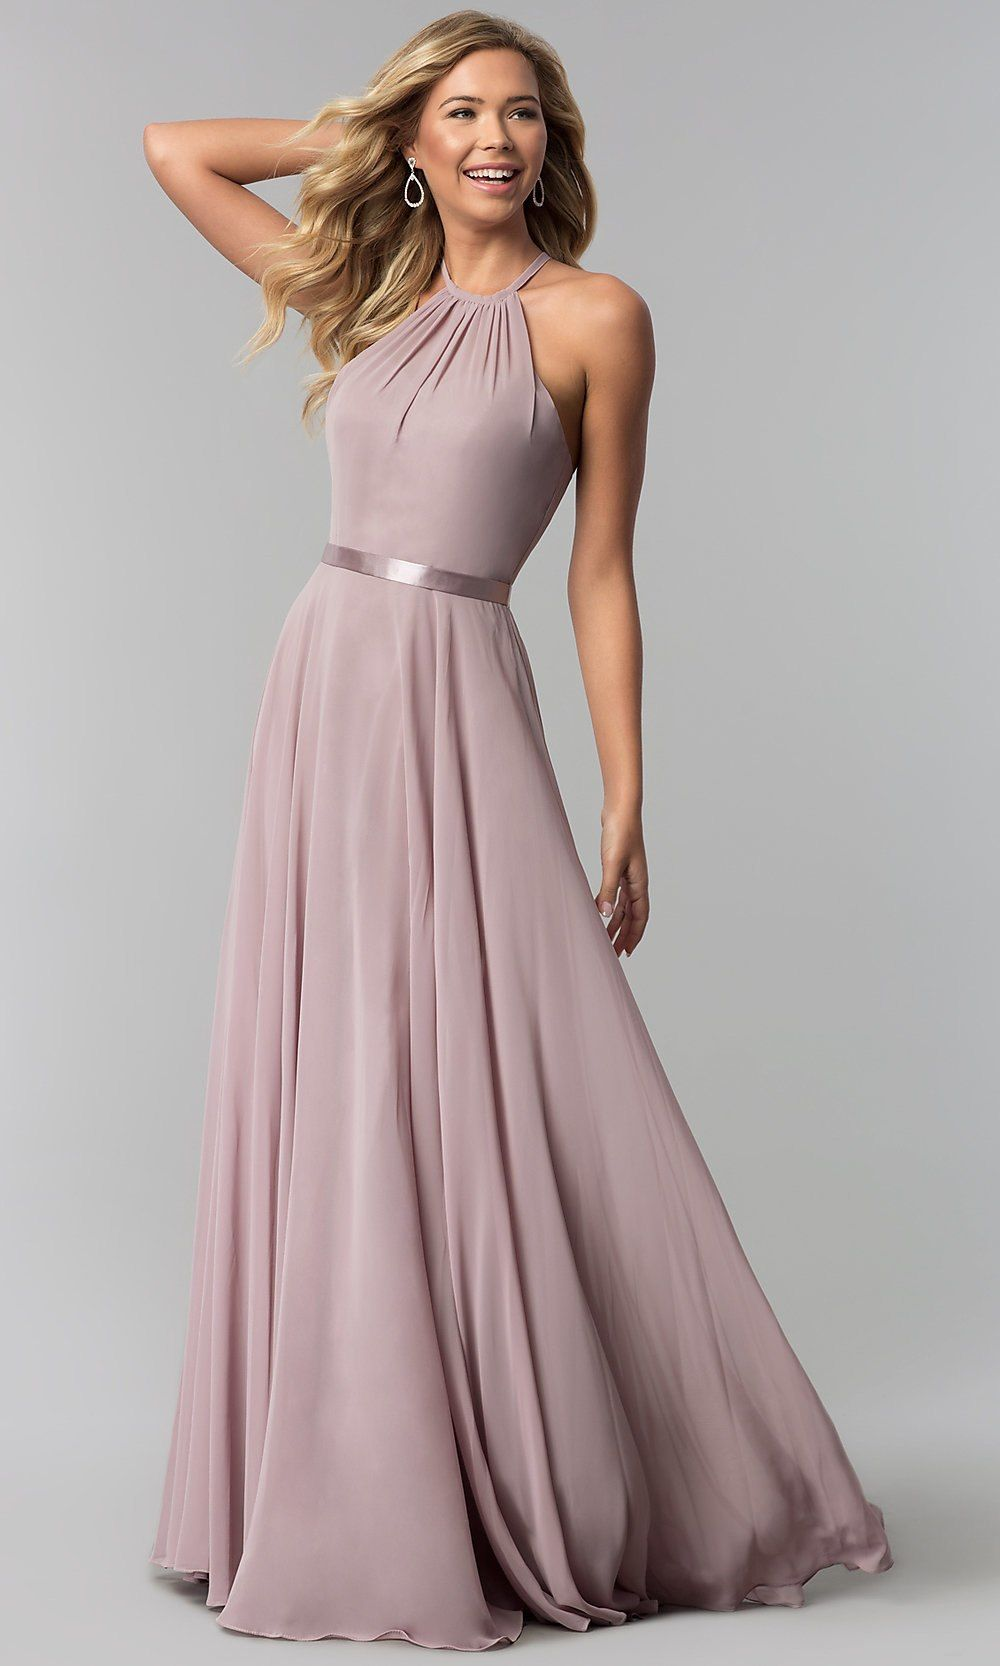 f35609bb7a7 Simply Dresses - Champagne High-Neck A-Line Long Chiffon Formal Dress